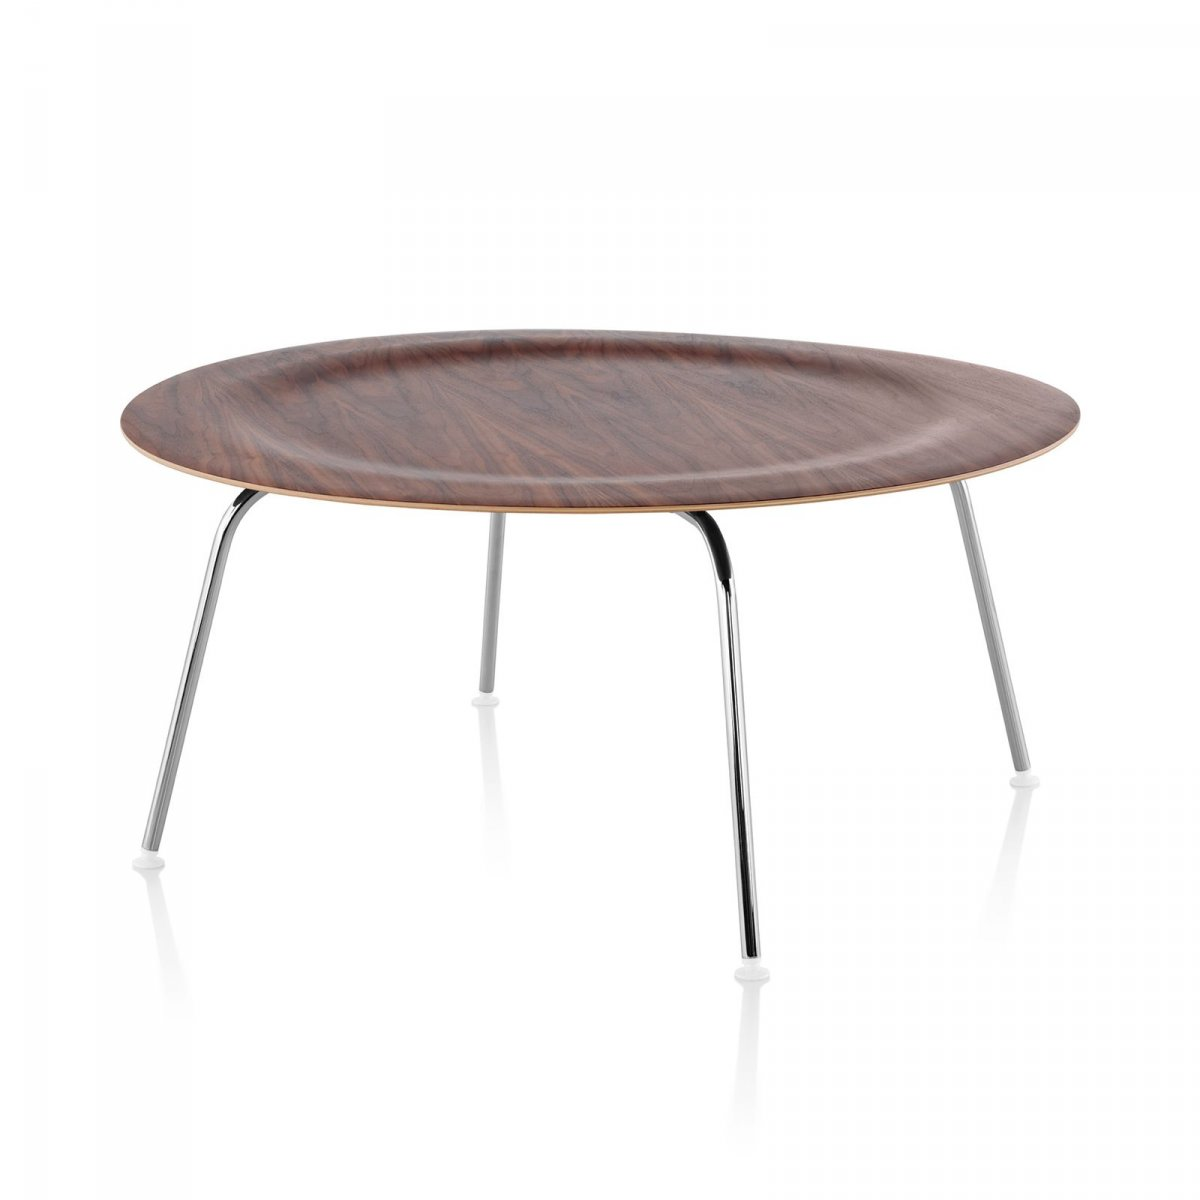 Eames Molded Plywood Coffee Table Metal Base By Charles Ray Eames For Herman Miller Up Interiors